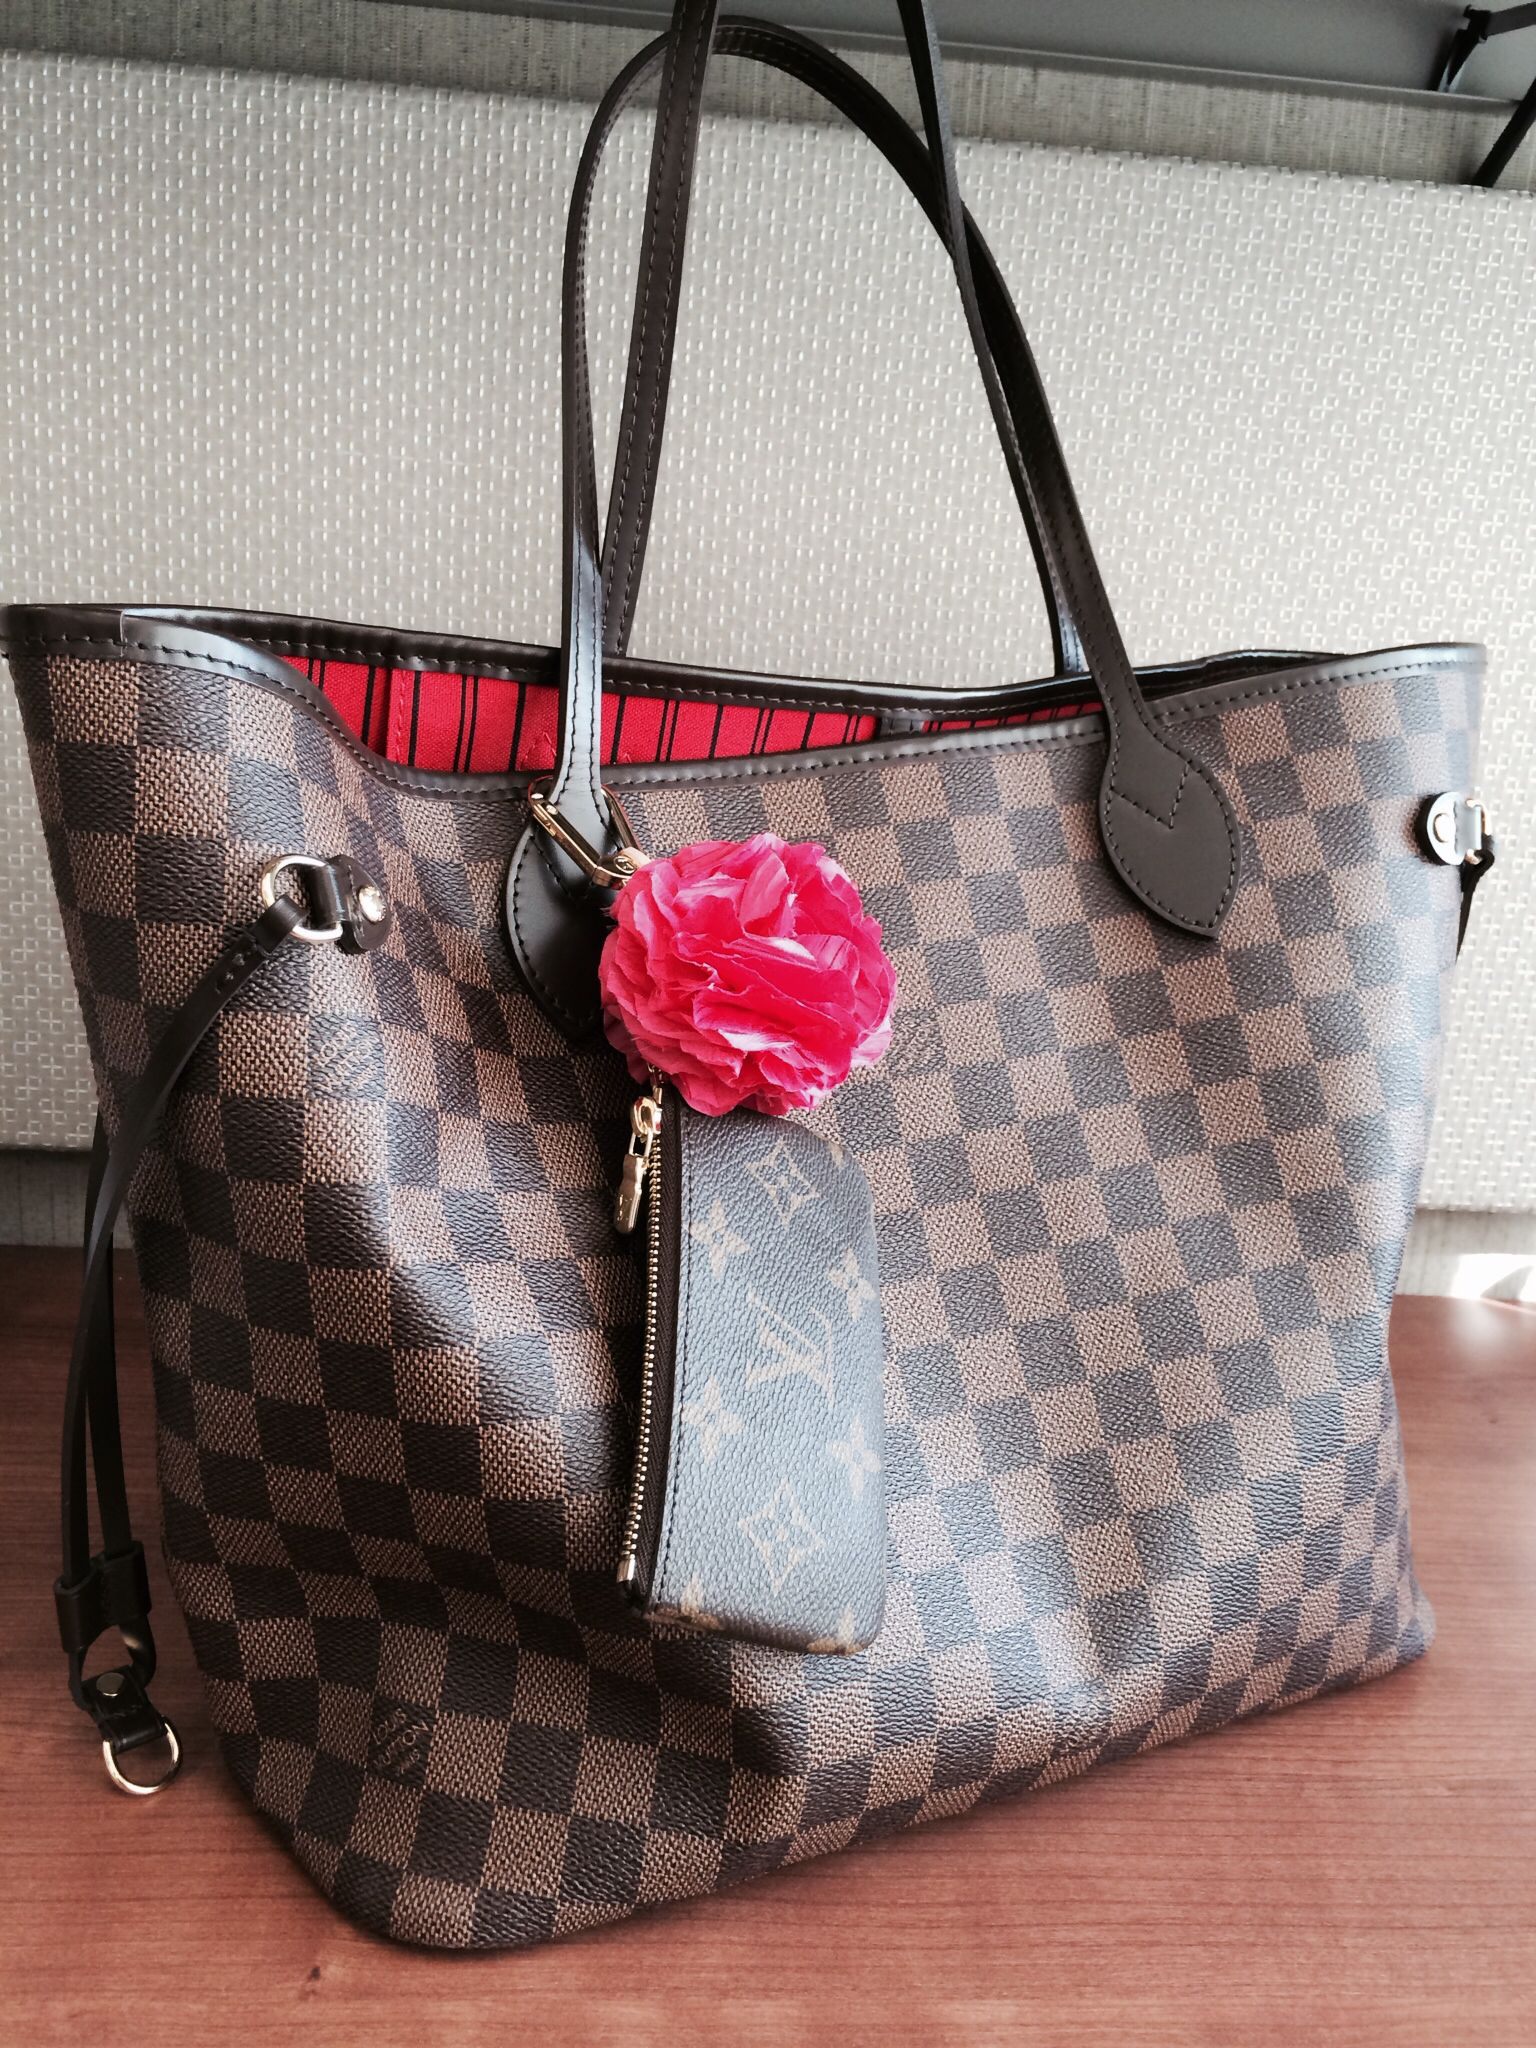 273b6b1ada55 Louis Vuitton Neverfull NM Damier Ebene (MM size) with LV Key Pouch in  Monogram and a made to order bag charm from Poppyhearts  (www.poppyhearts.com).